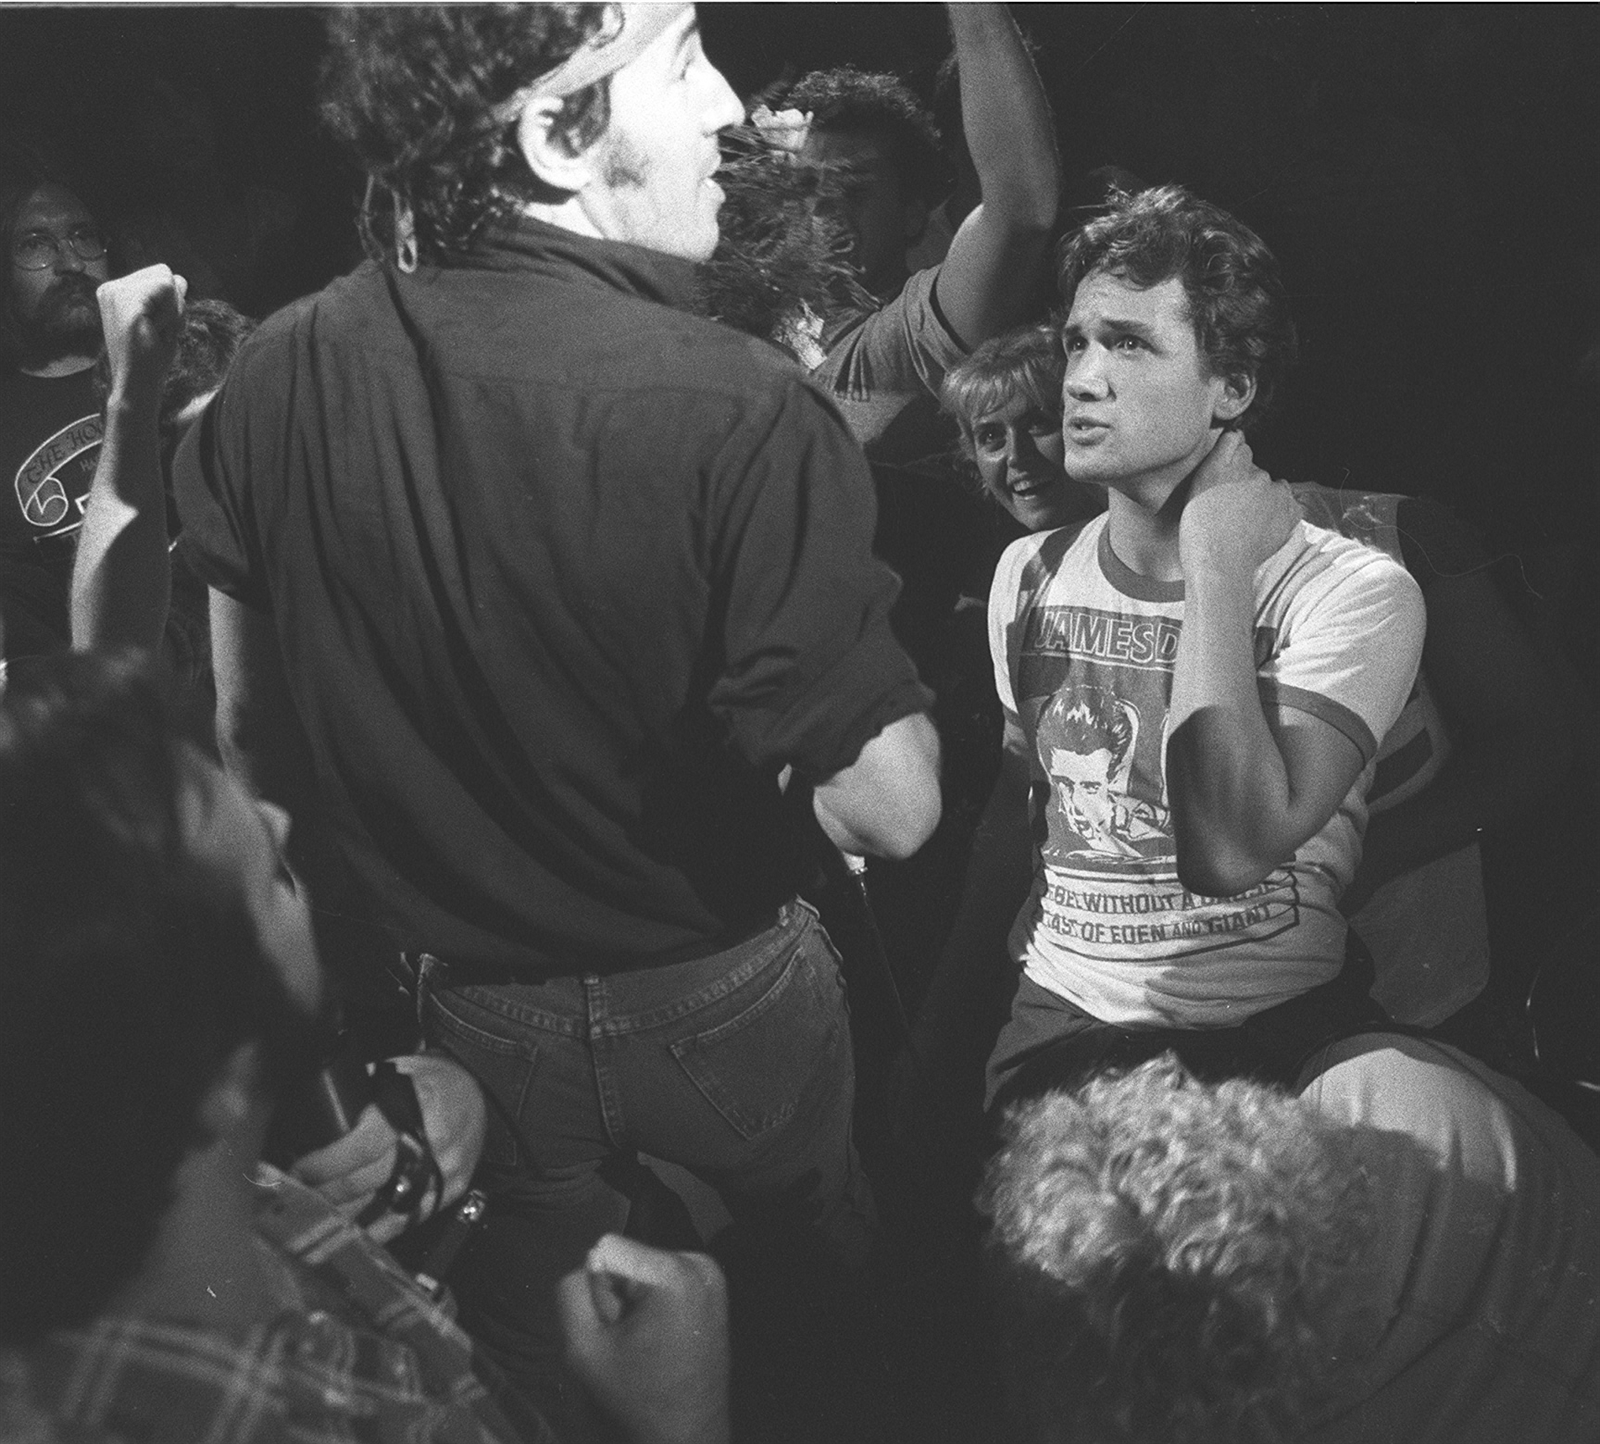 Bruce Springsteen with a fan at the 1984 show at the Aud. Anyone recognize the fan? (News file photo)